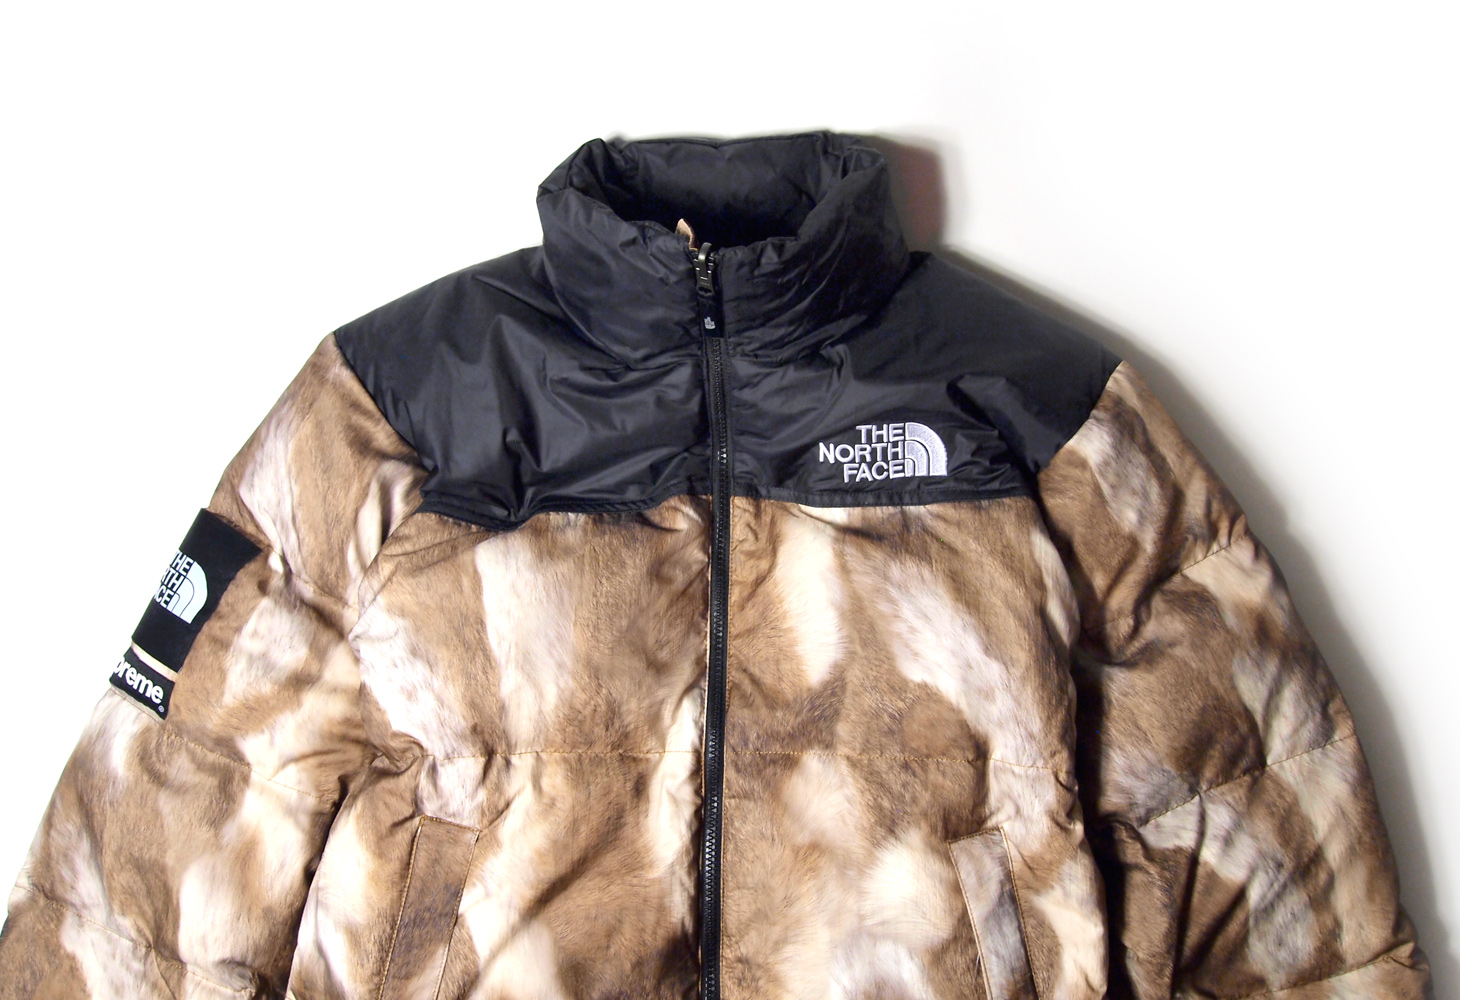 The North Face Supreme - Fur Print Nuptse Jacket - ParkSIDER  b1ca0e2a7